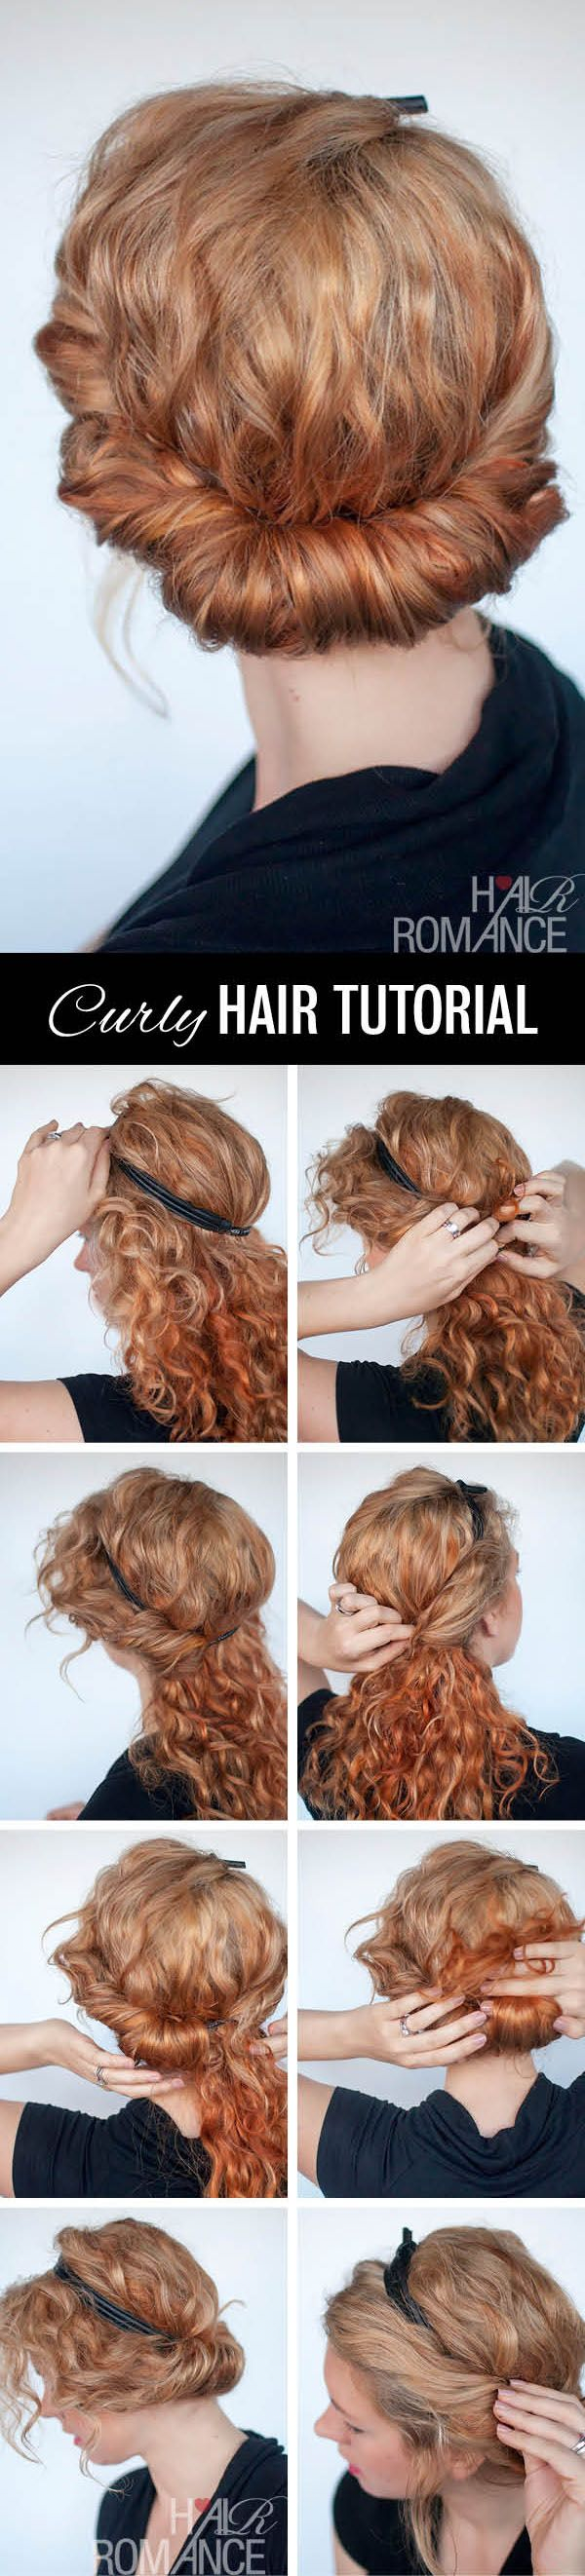 Stupendous 1000 Ideas About Easy Curly Hairstyles On Pinterest Hair Tricks Short Hairstyles For Black Women Fulllsitofus